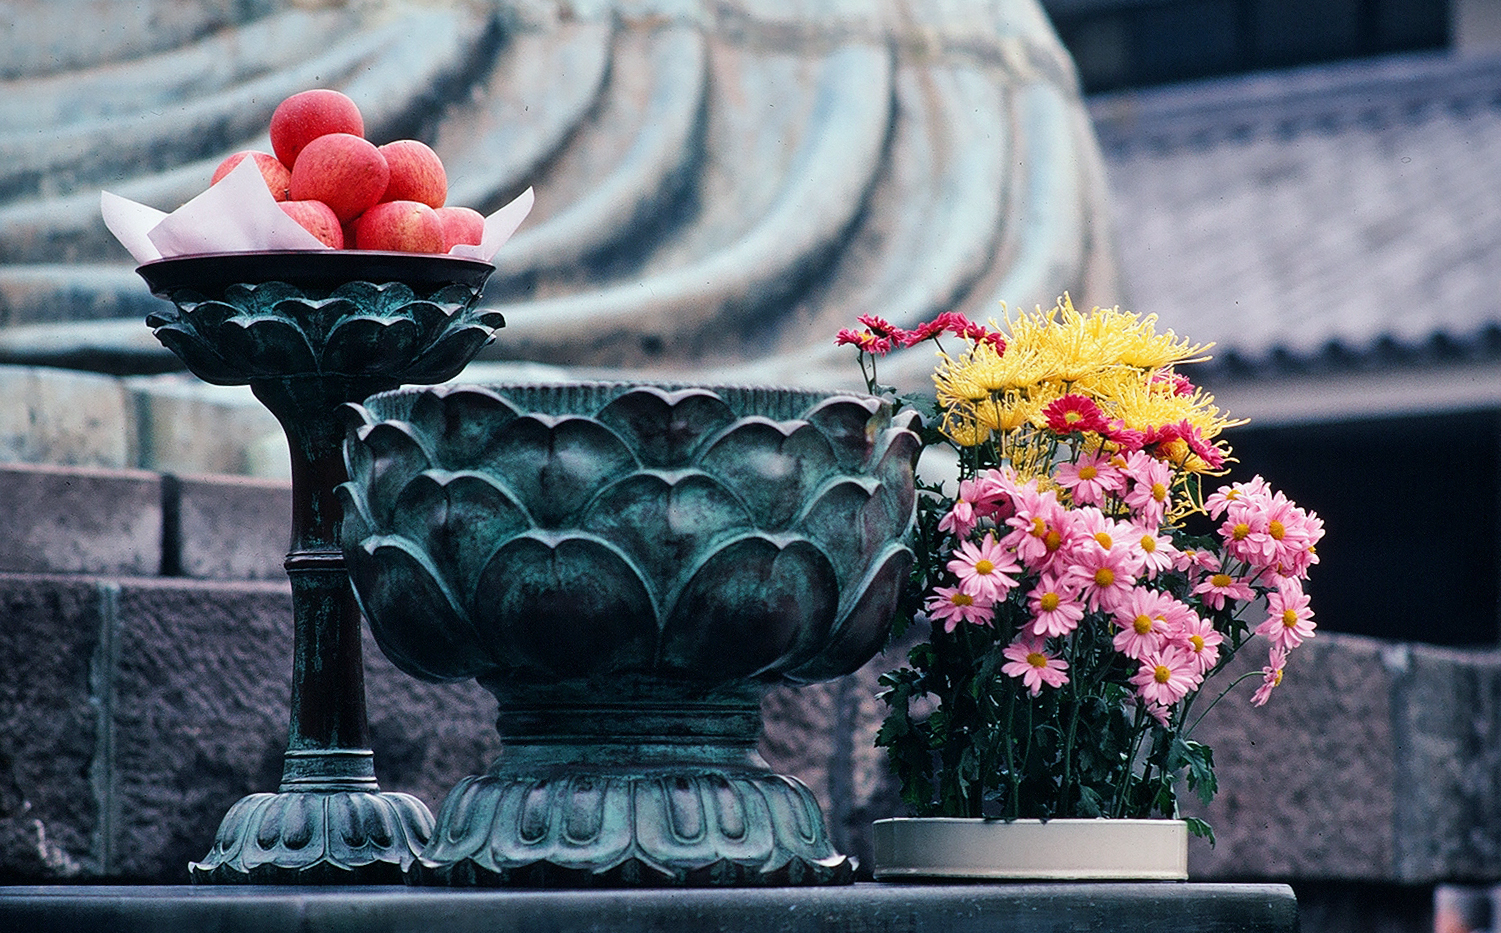 Offerings, Great Buddha of Kamakura, Kotokuin Temple, Kamakura, Japan, 1980, by Terry Feuerborn (c) 2013 https://www.flickr.com/photos/travfotos/10985369725/